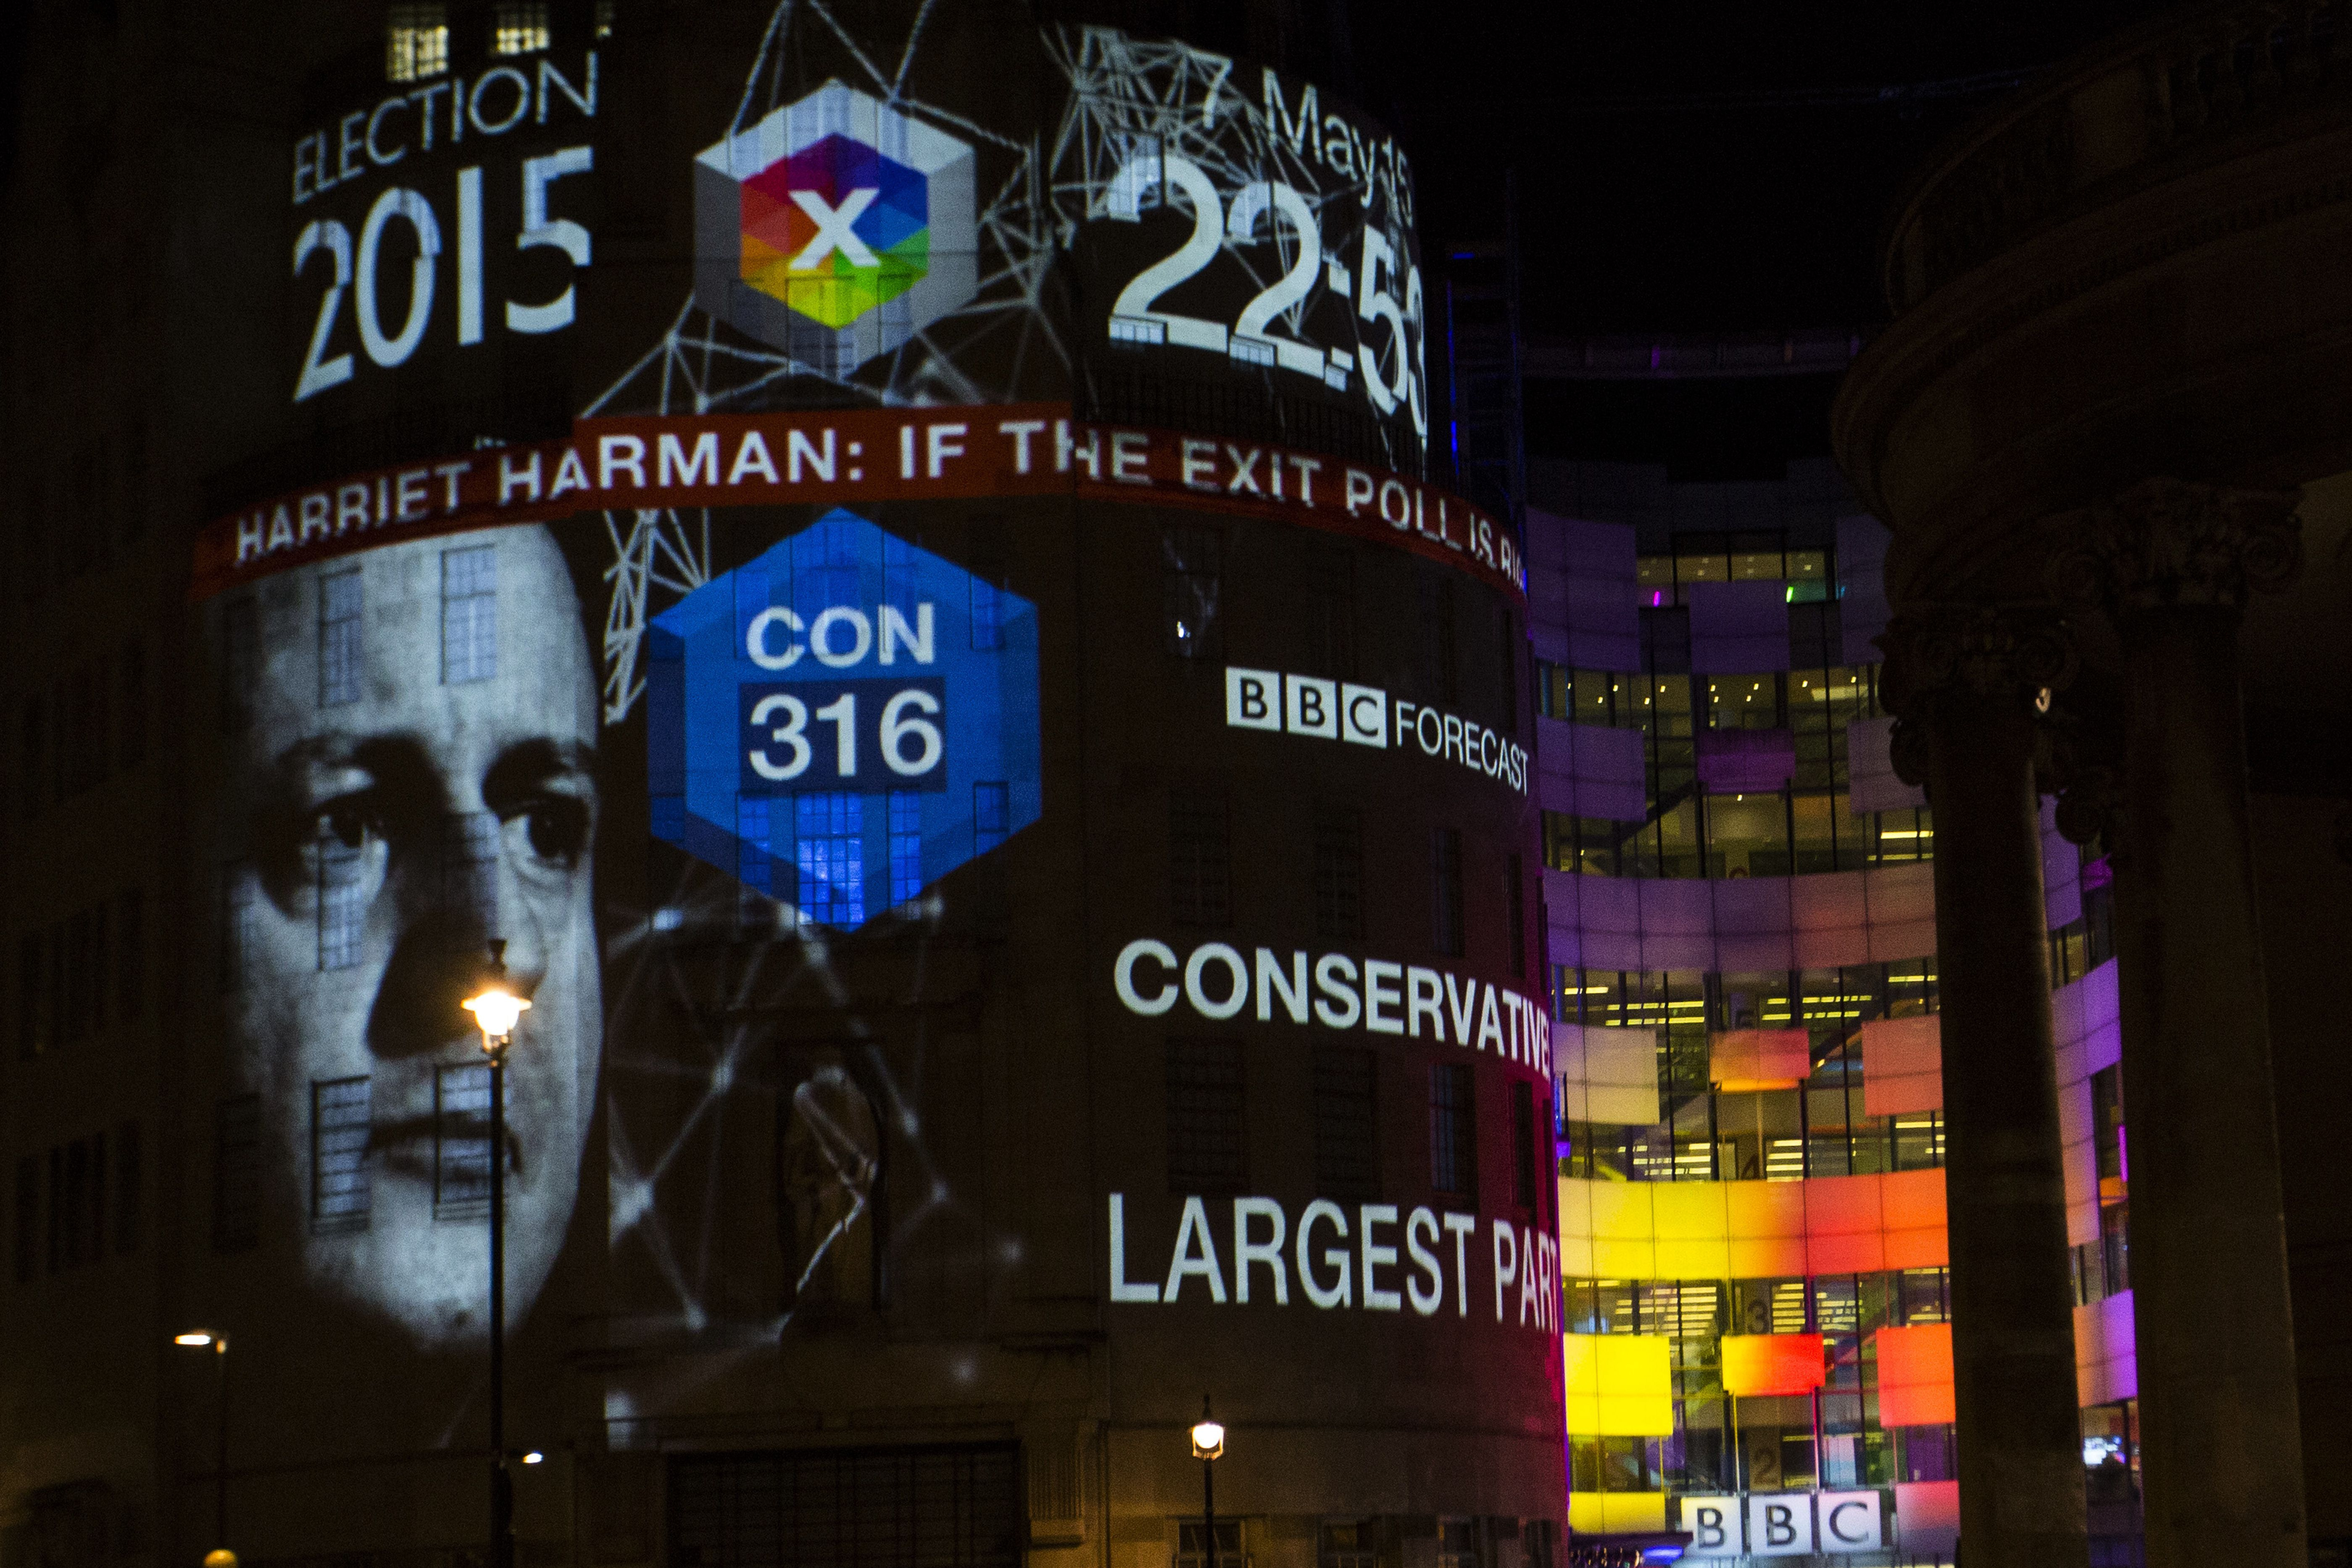 An exit poll predicting that the Conservative Party led by Prime Minister David Cameron will be the largest part with 316 seats is projected onto BBC Broadcasting House, Portland Place in London as voting finishes in Britains general election on May 7, 2015. Prime Minister David Cameron's Conservatives are on course to be the biggest party in the next British parliament, according to an exit poll from the general election showing them winning far more seats than had been expected.   AFP PHOTO / JACK TAYLOR        (Photo credit should read JACK TAYLOR/AFP/Getty Images)